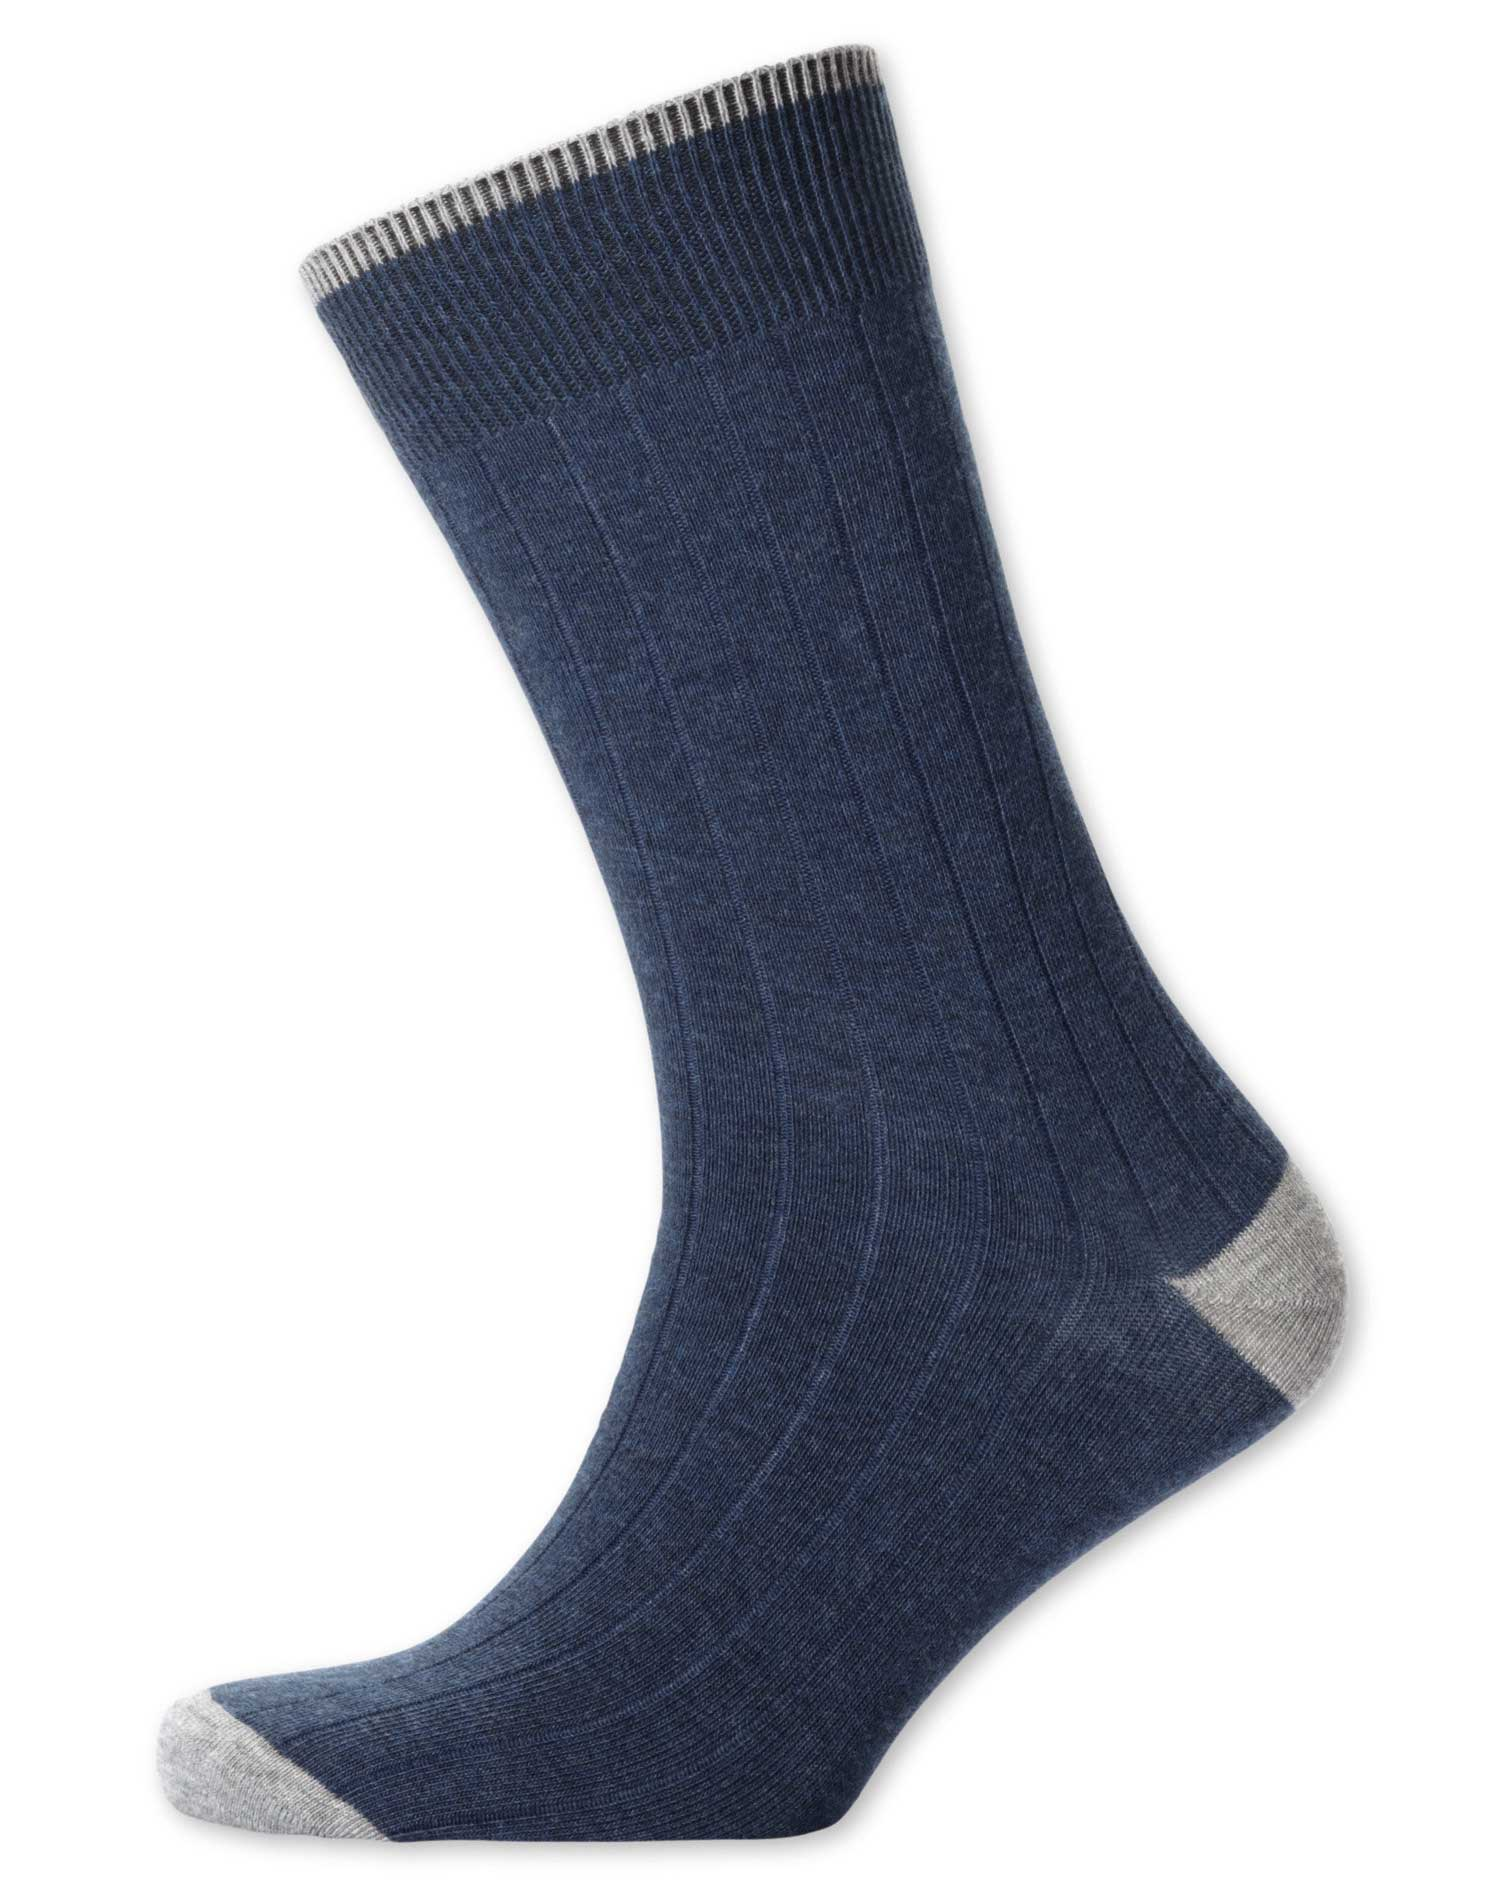 Indigo Cotton Rib Socks Size Medium by Charles Tyrwhitt